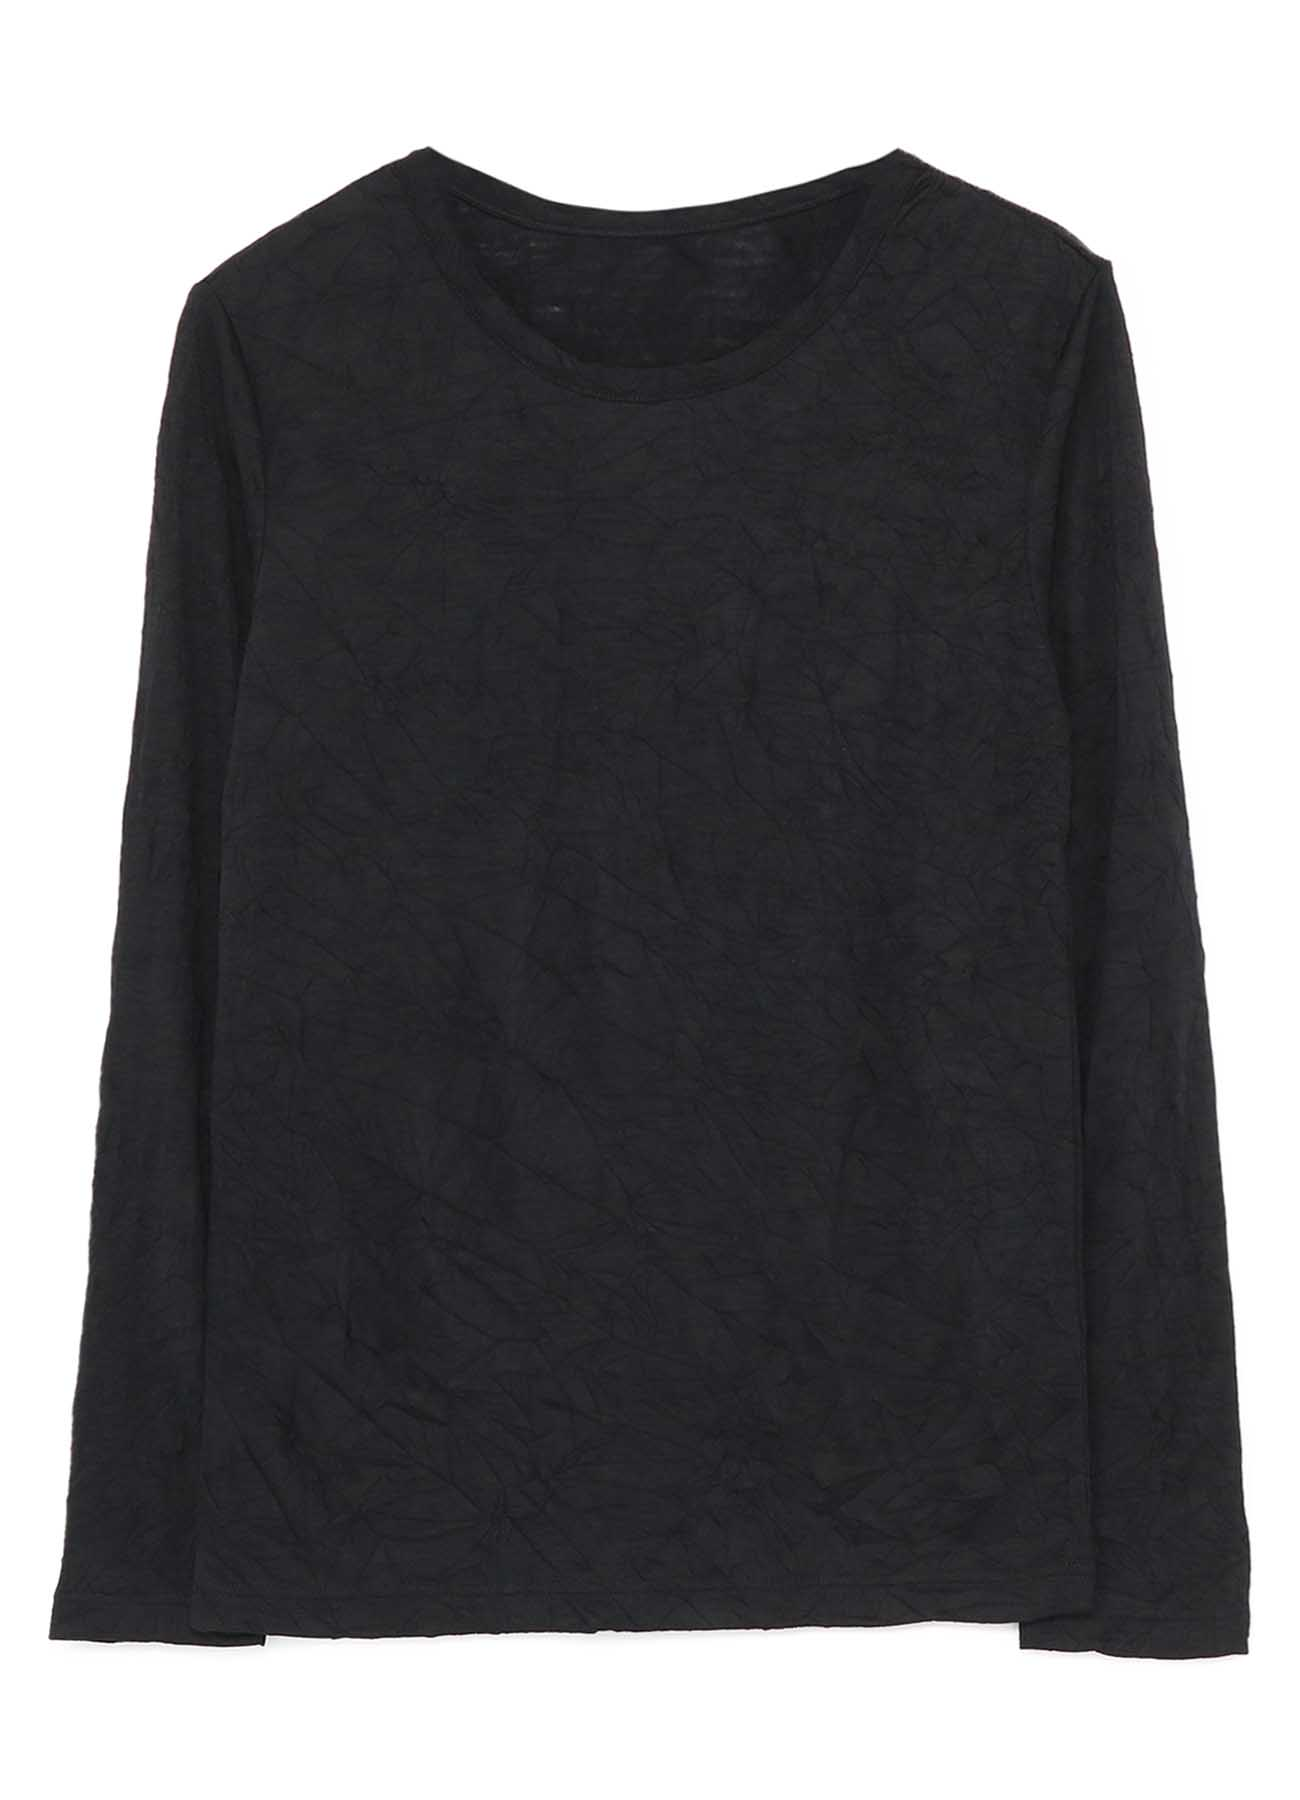 PLAIN STICH WRINKLE ROUND NECK LONG SLEEVE T